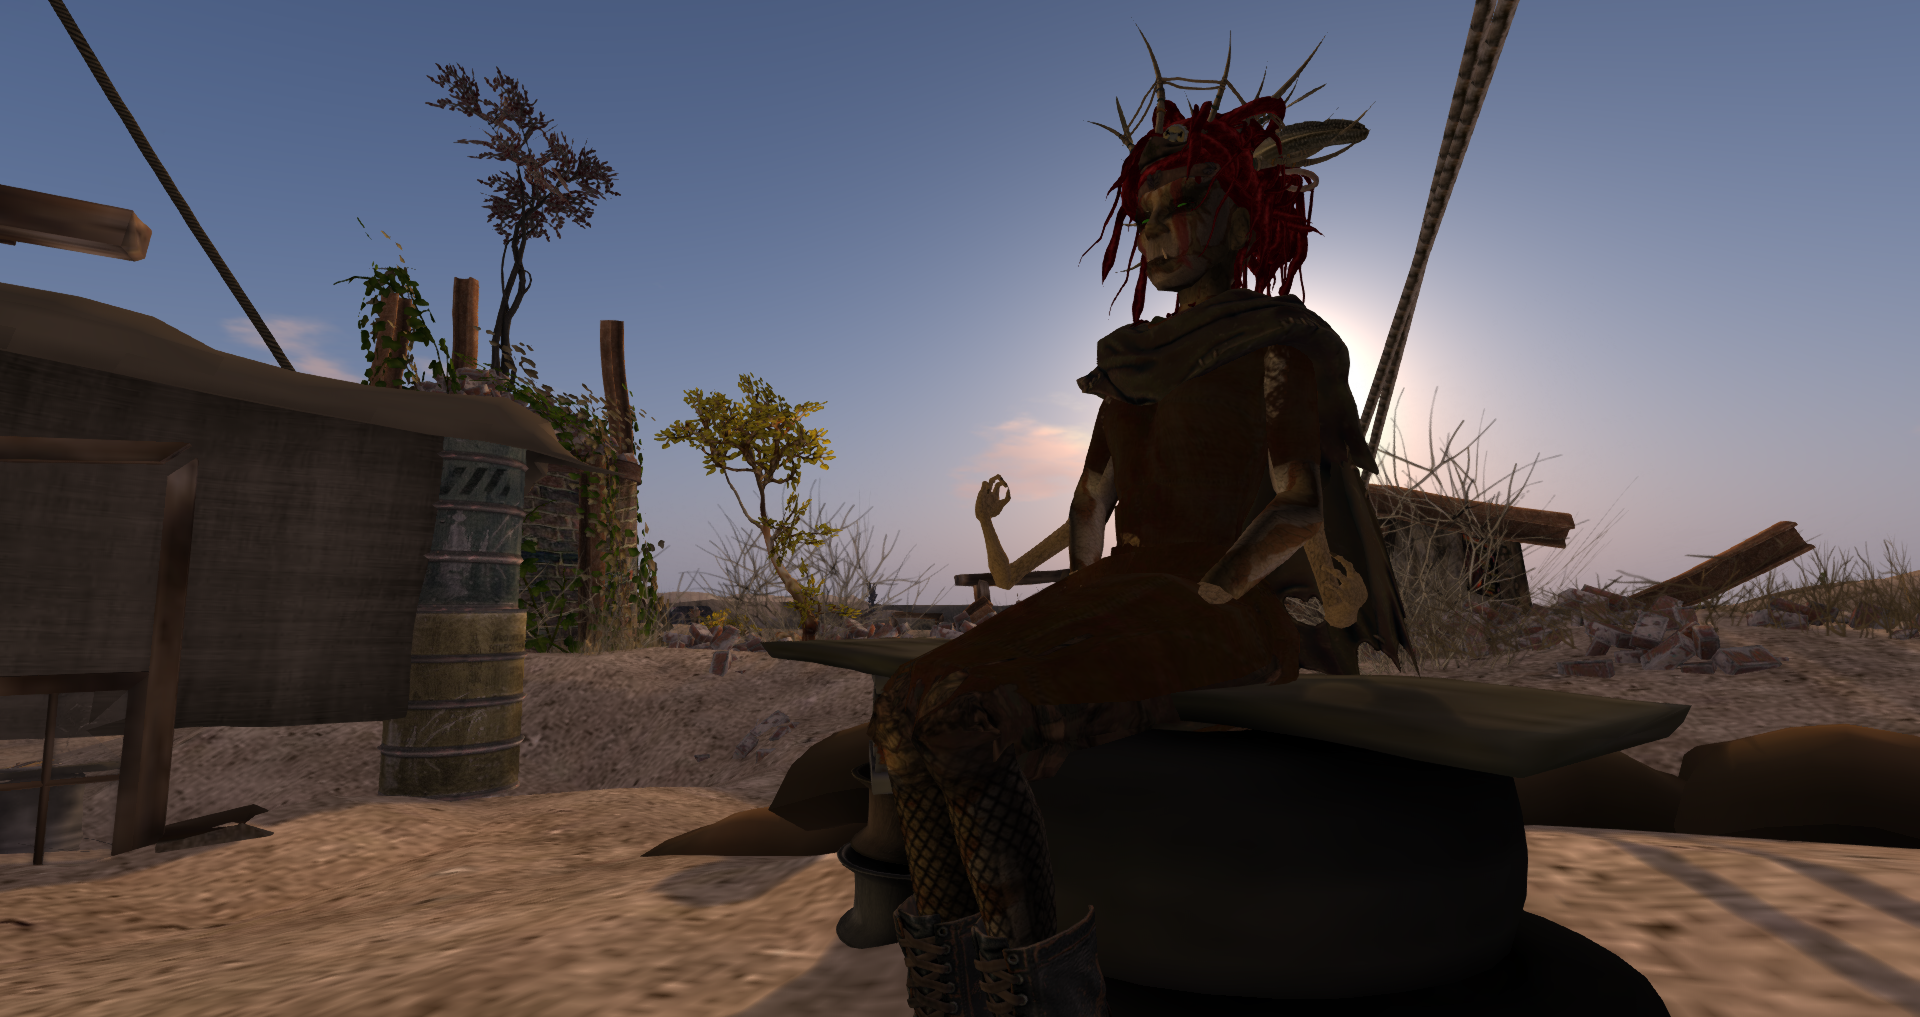 The Mutant Witch of the Wastes ((Cindy Pfeffer)) sitting on a bench at her camp.